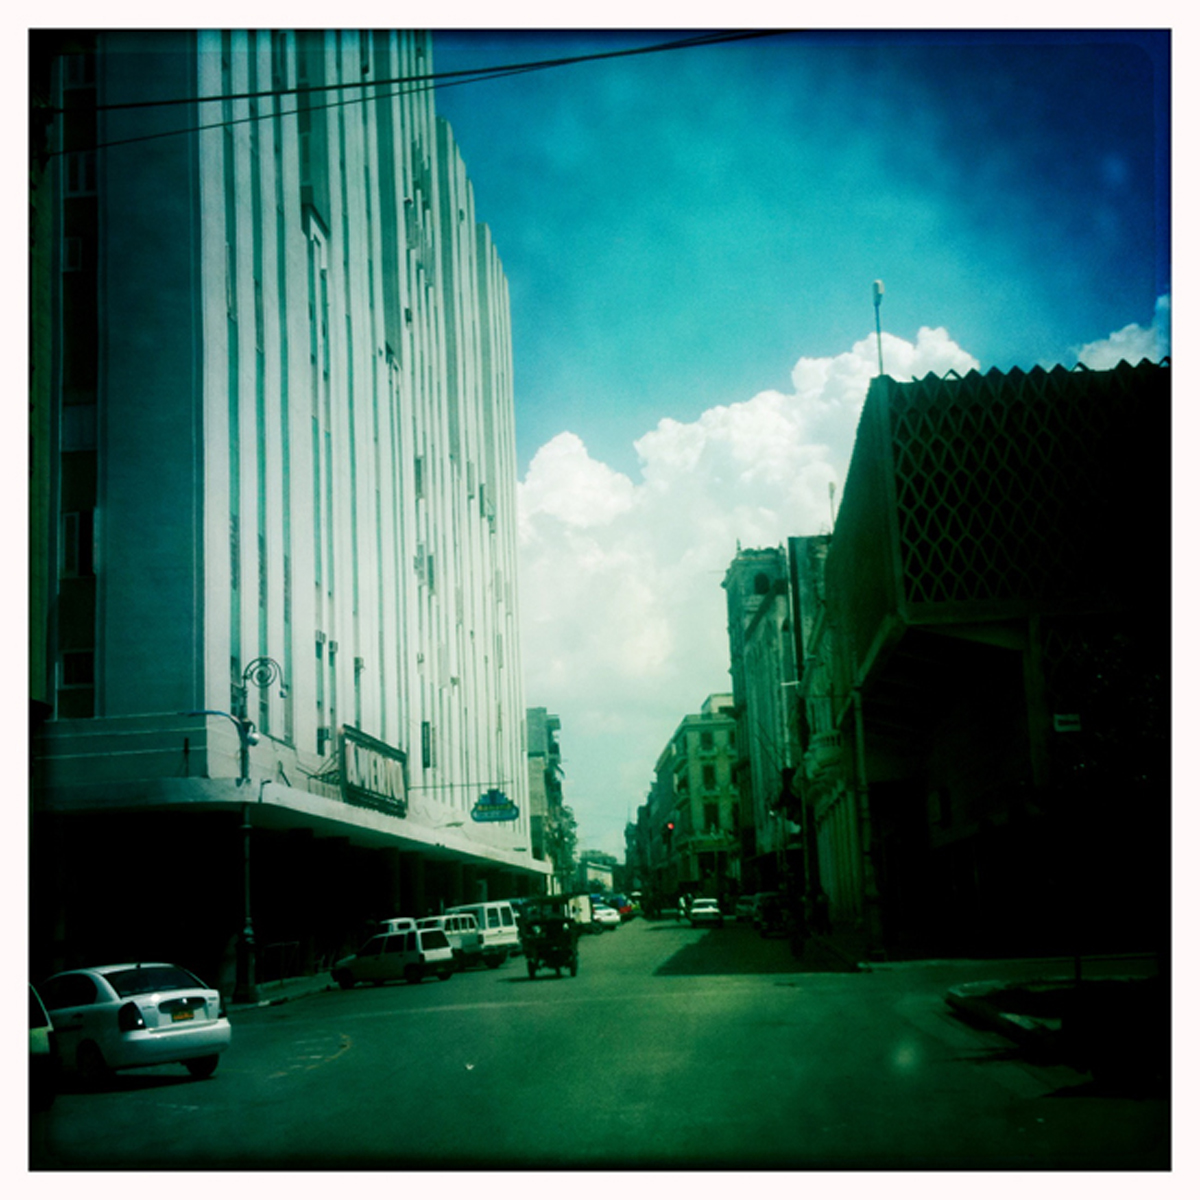 Once, magnificent avenues and boulevards lined the streets by buildings of gradeur and automobiles of movies past.